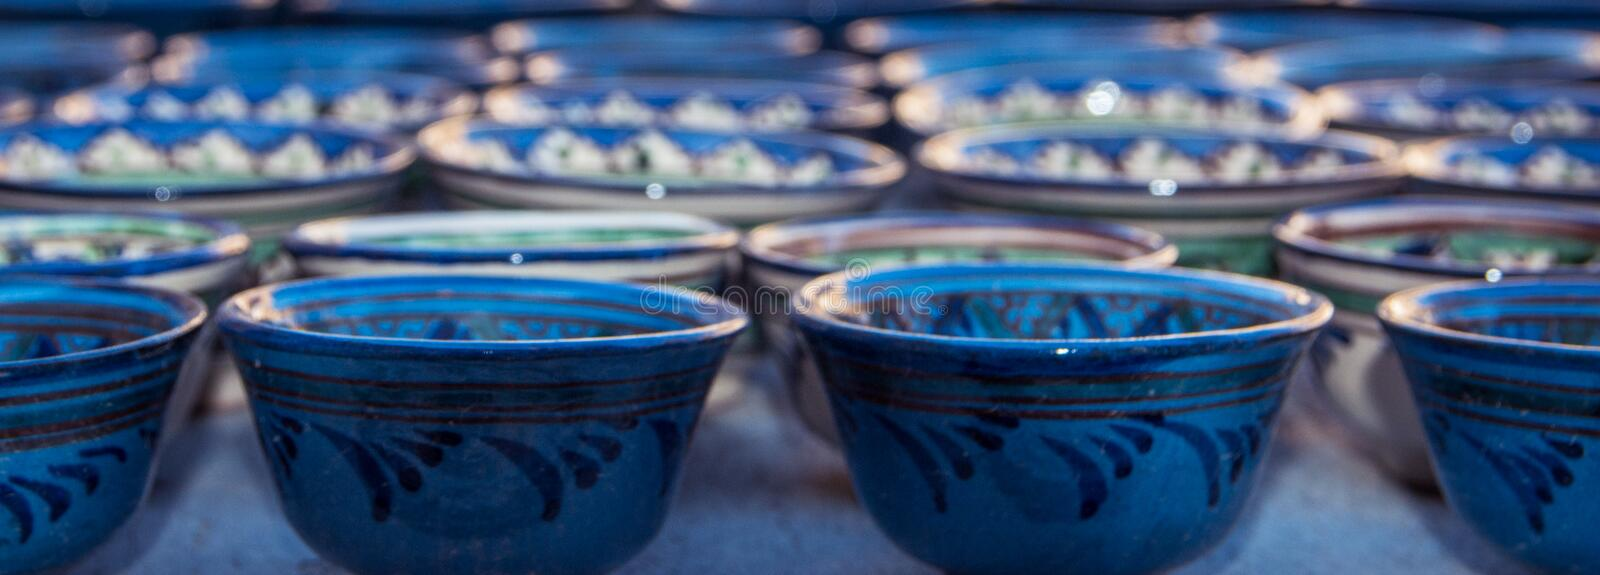 Rows of cups with traditional uzbekistan ornament in Bukhara, Uzbekistan, Central Asia. Silk Road. Rows of cups with traditional uzbekistan ornament on a street stock image